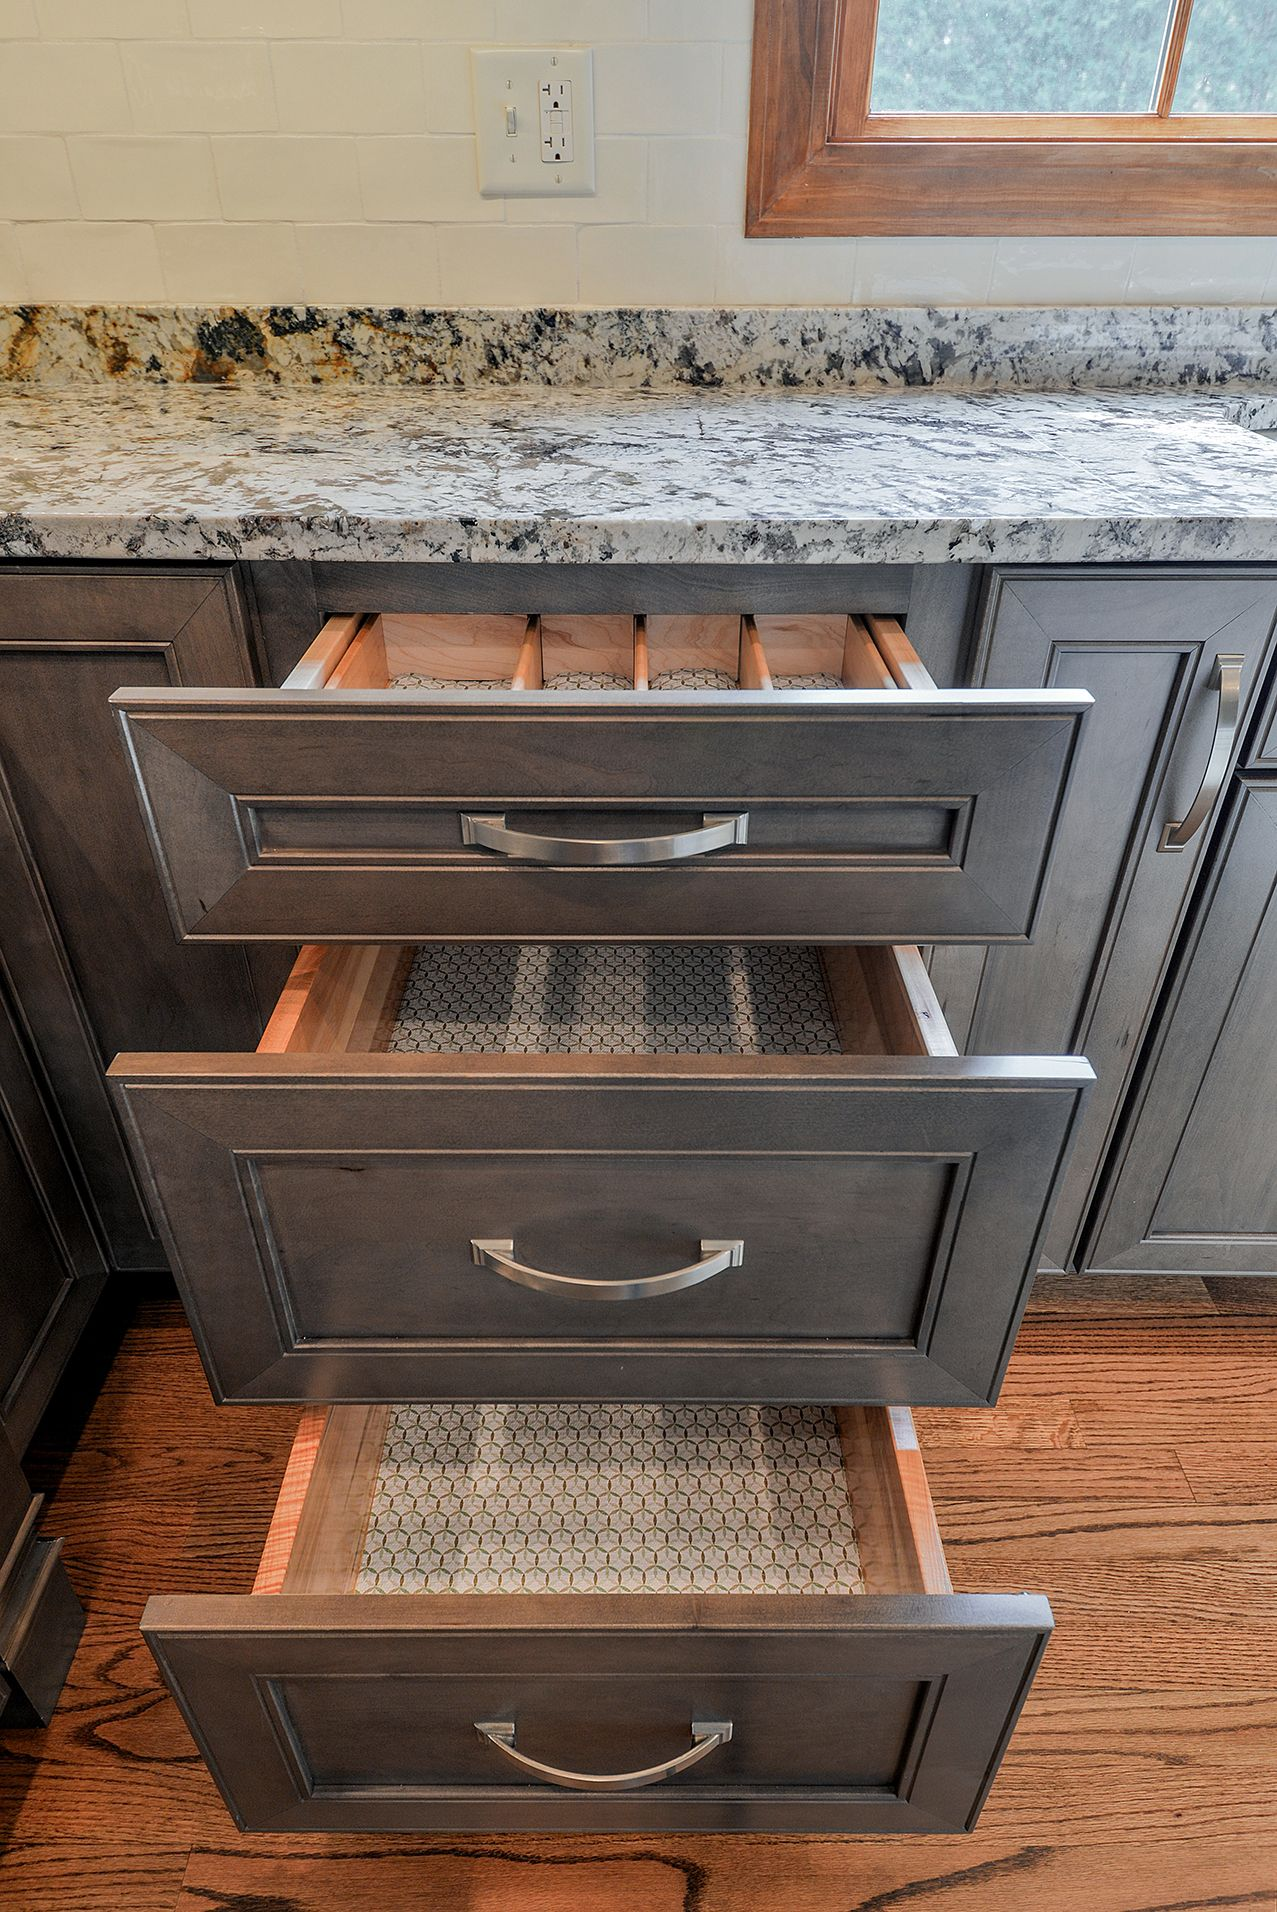 Wellborn Cabinet Inc Premier Series Sonoma Door Style On Maple Wood Stained With Drift The Drawers A Wellborn Cabinets Finish Kitchen Cabinets Staining Wood